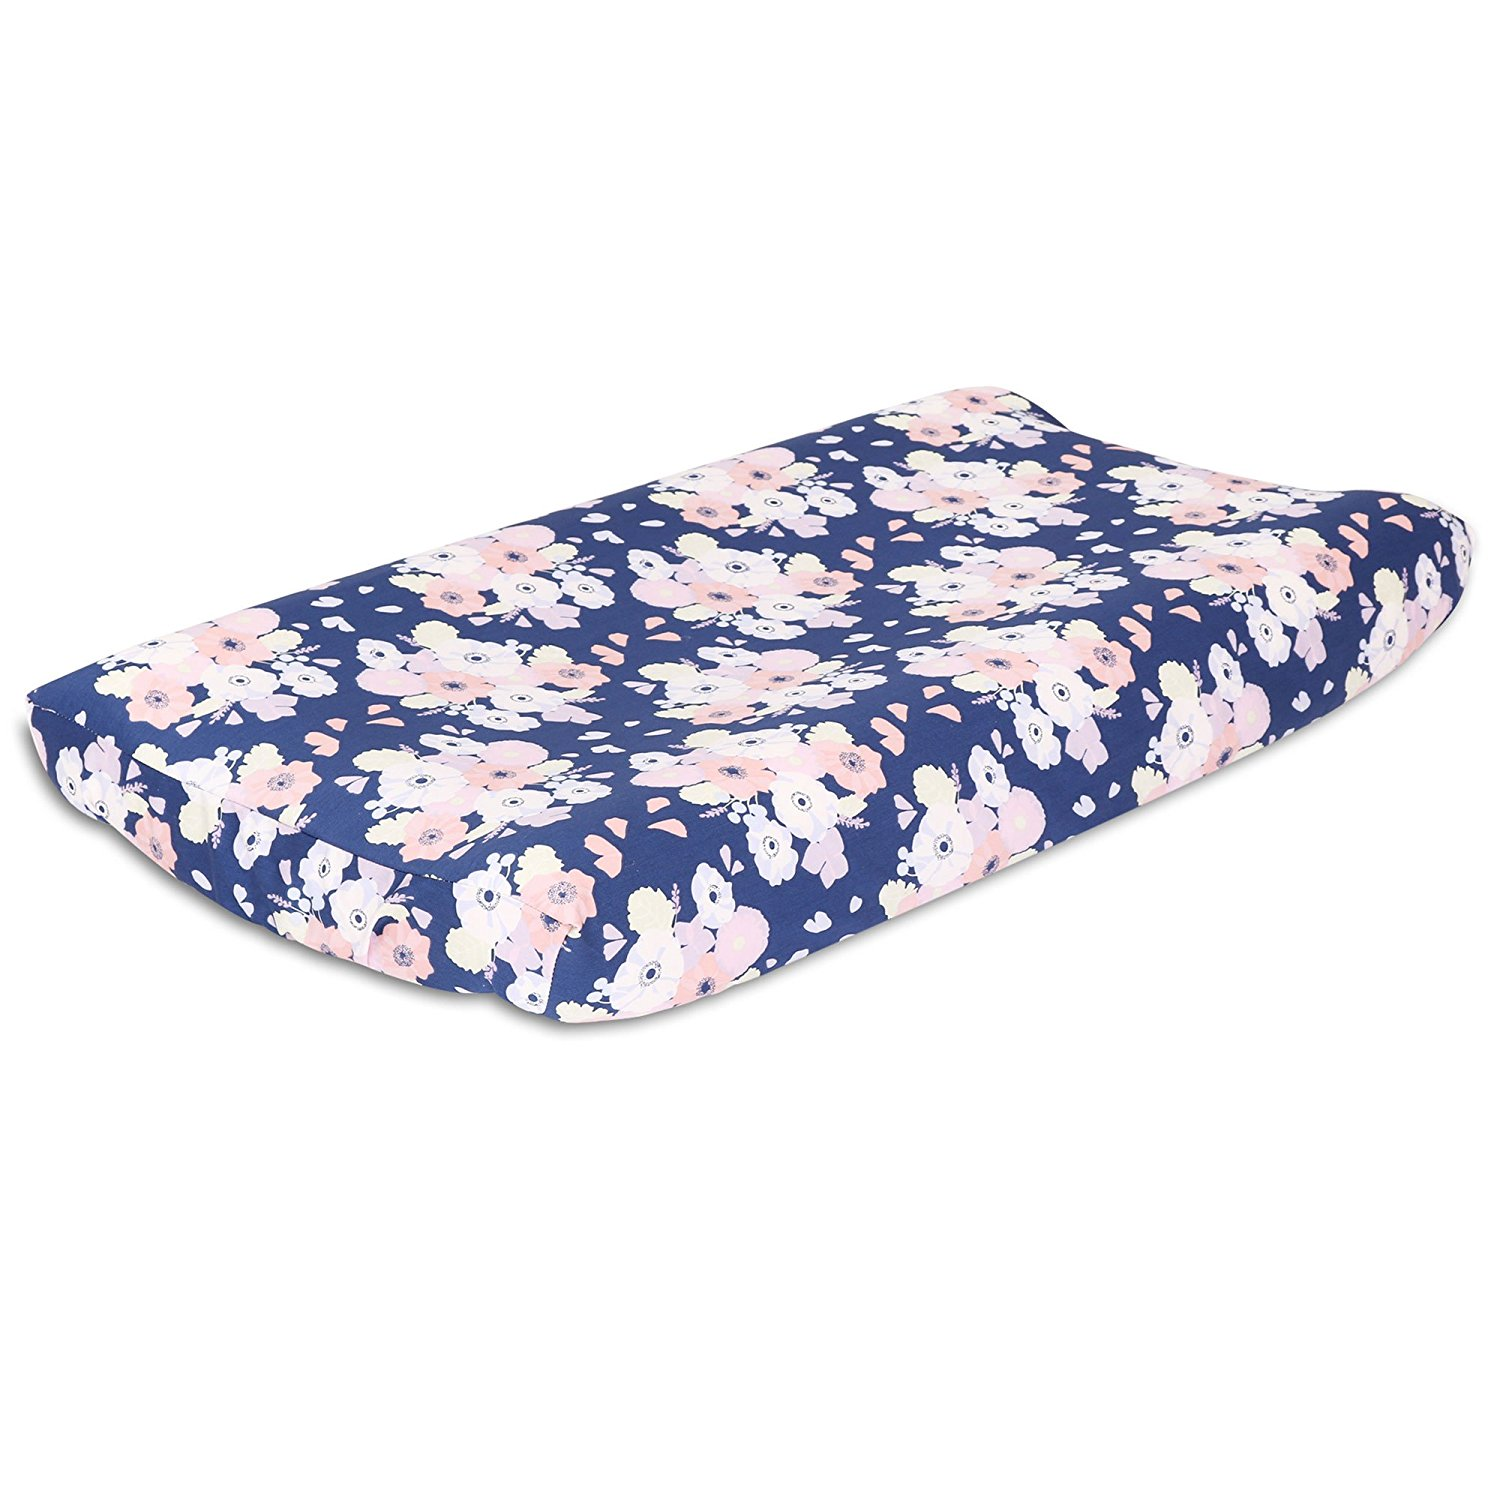 Navy Blue and Coral Floral Baby Changing Pad Cover by, This Peanut Shell changing pad cover features a rich navy blue background strewn with flowers and petals.., By The Peanut Shell Ship from US